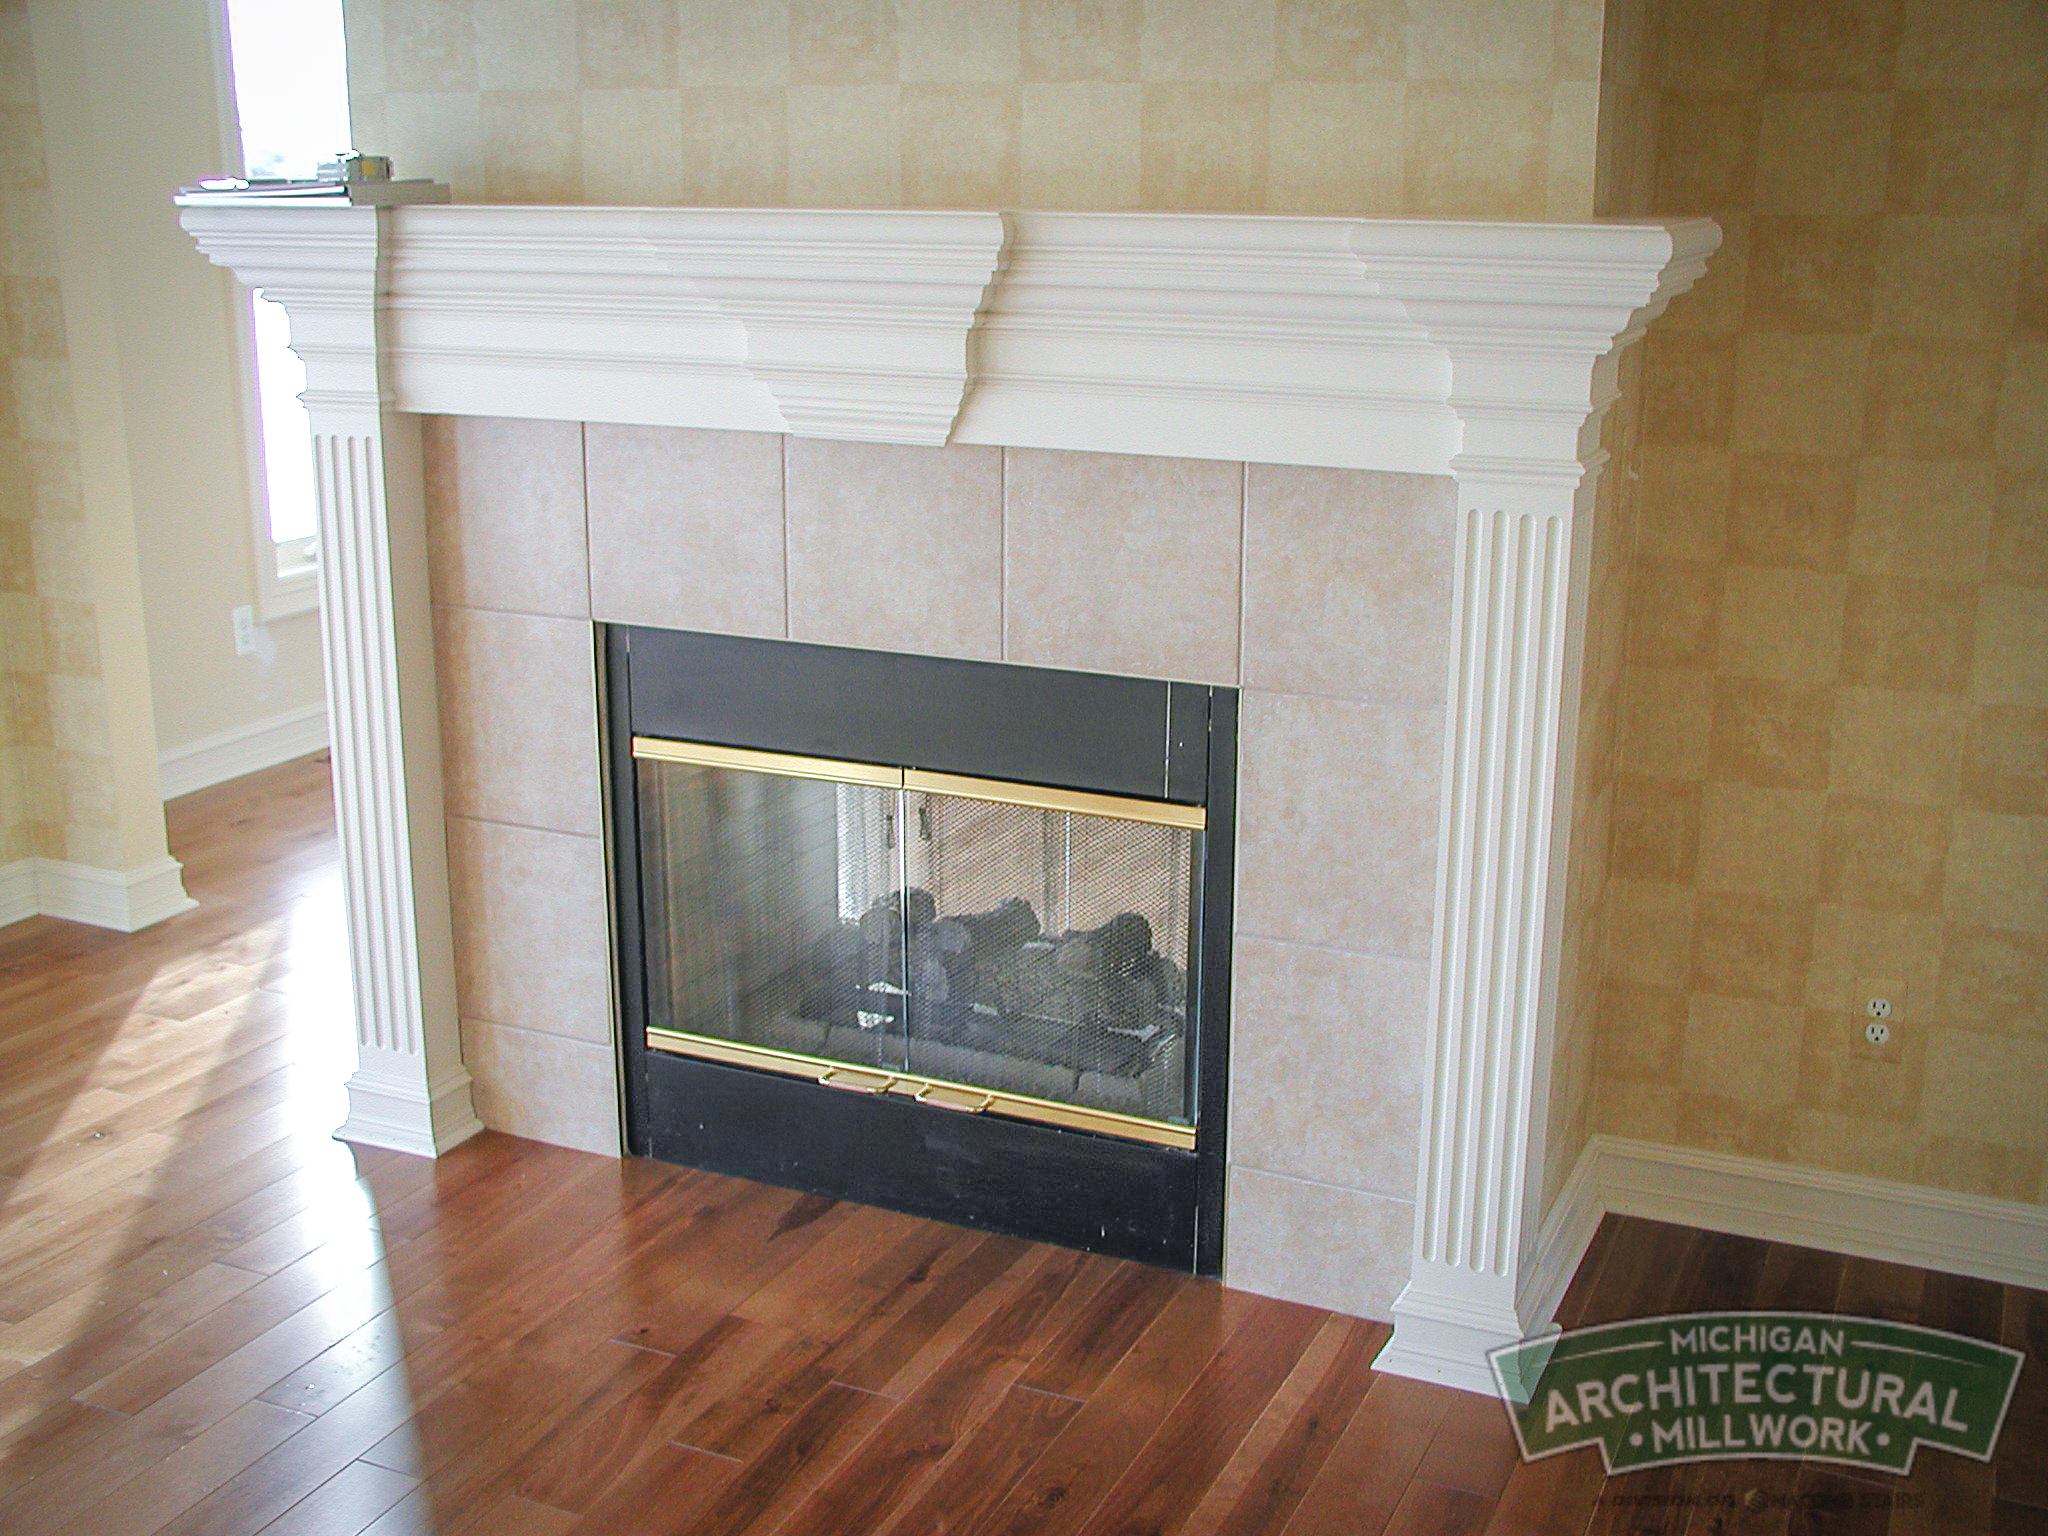 Michigan Architectural Millwork- Moulding and Millwork Photo-196.jpg